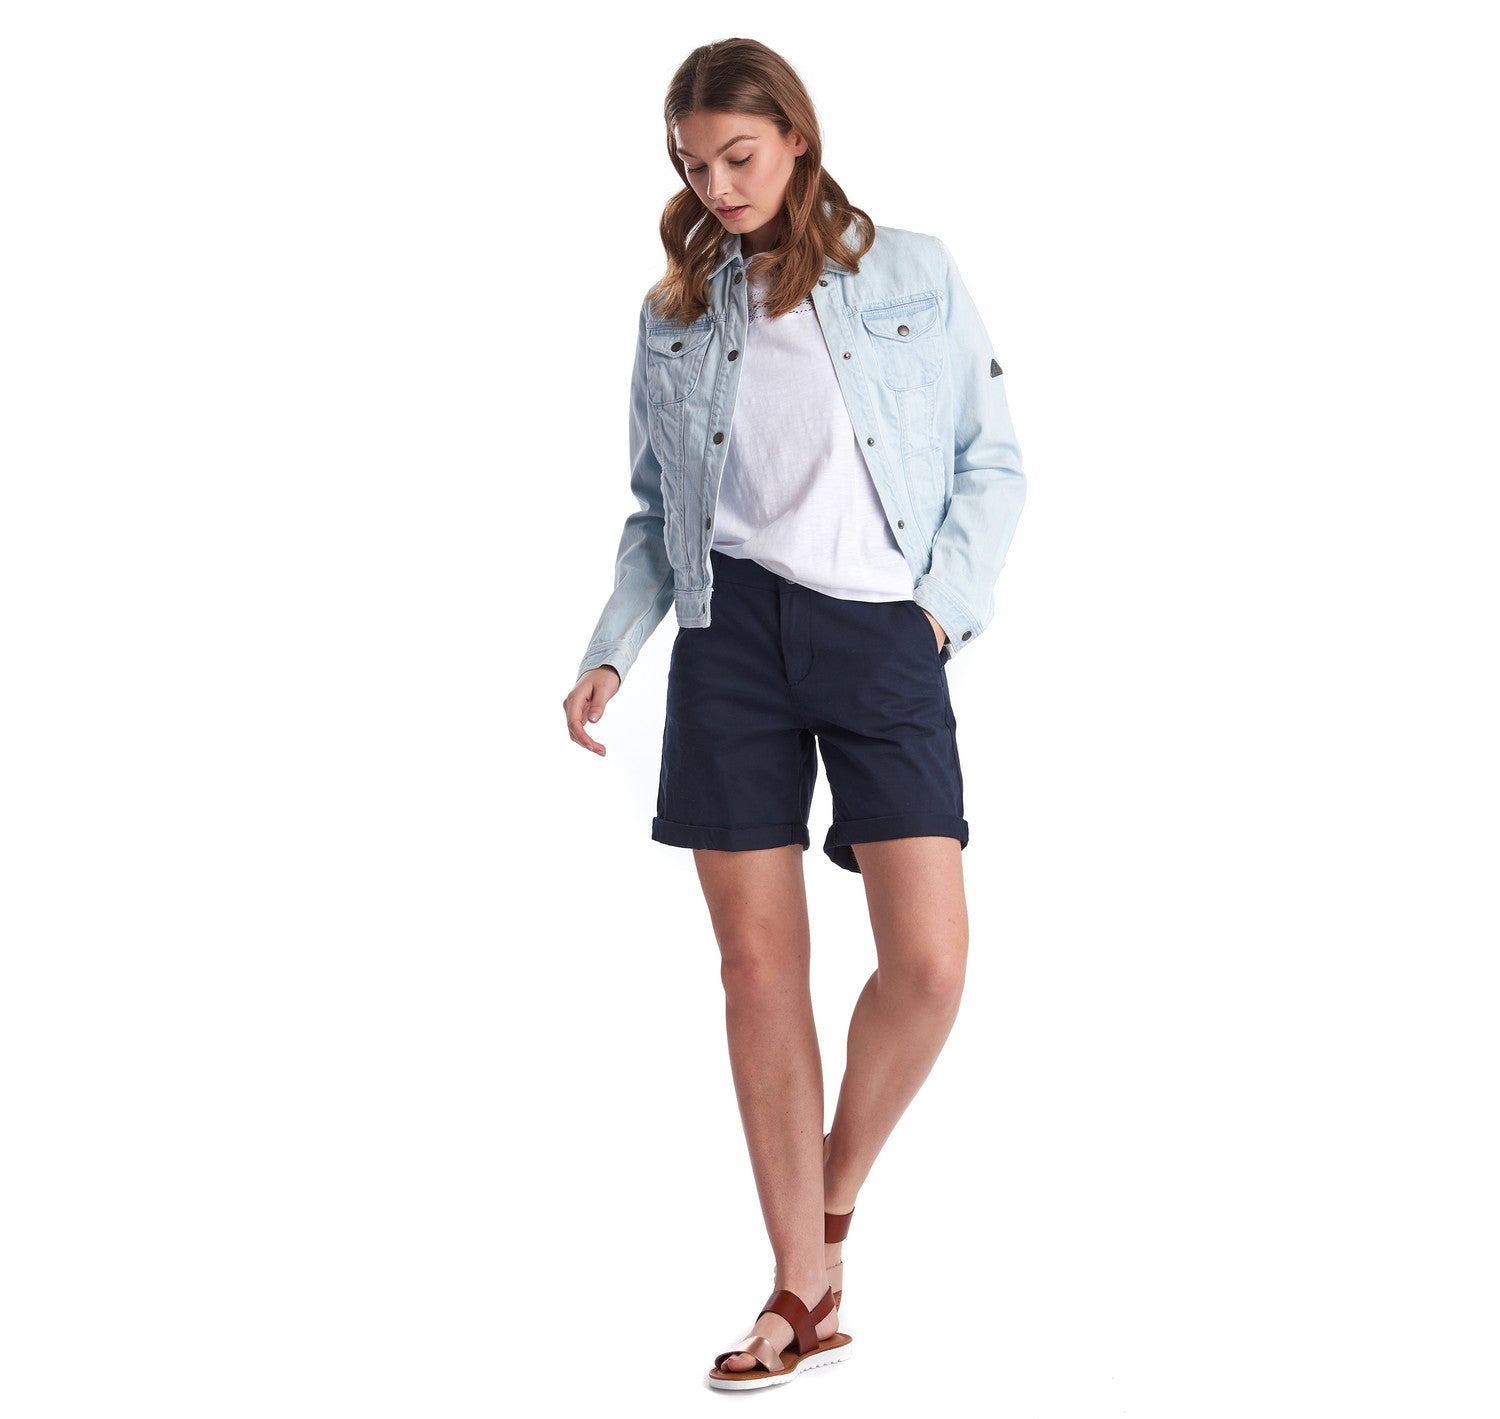 Barbour Ripple Denim Jacket for Ladies in Super Bleached Denim